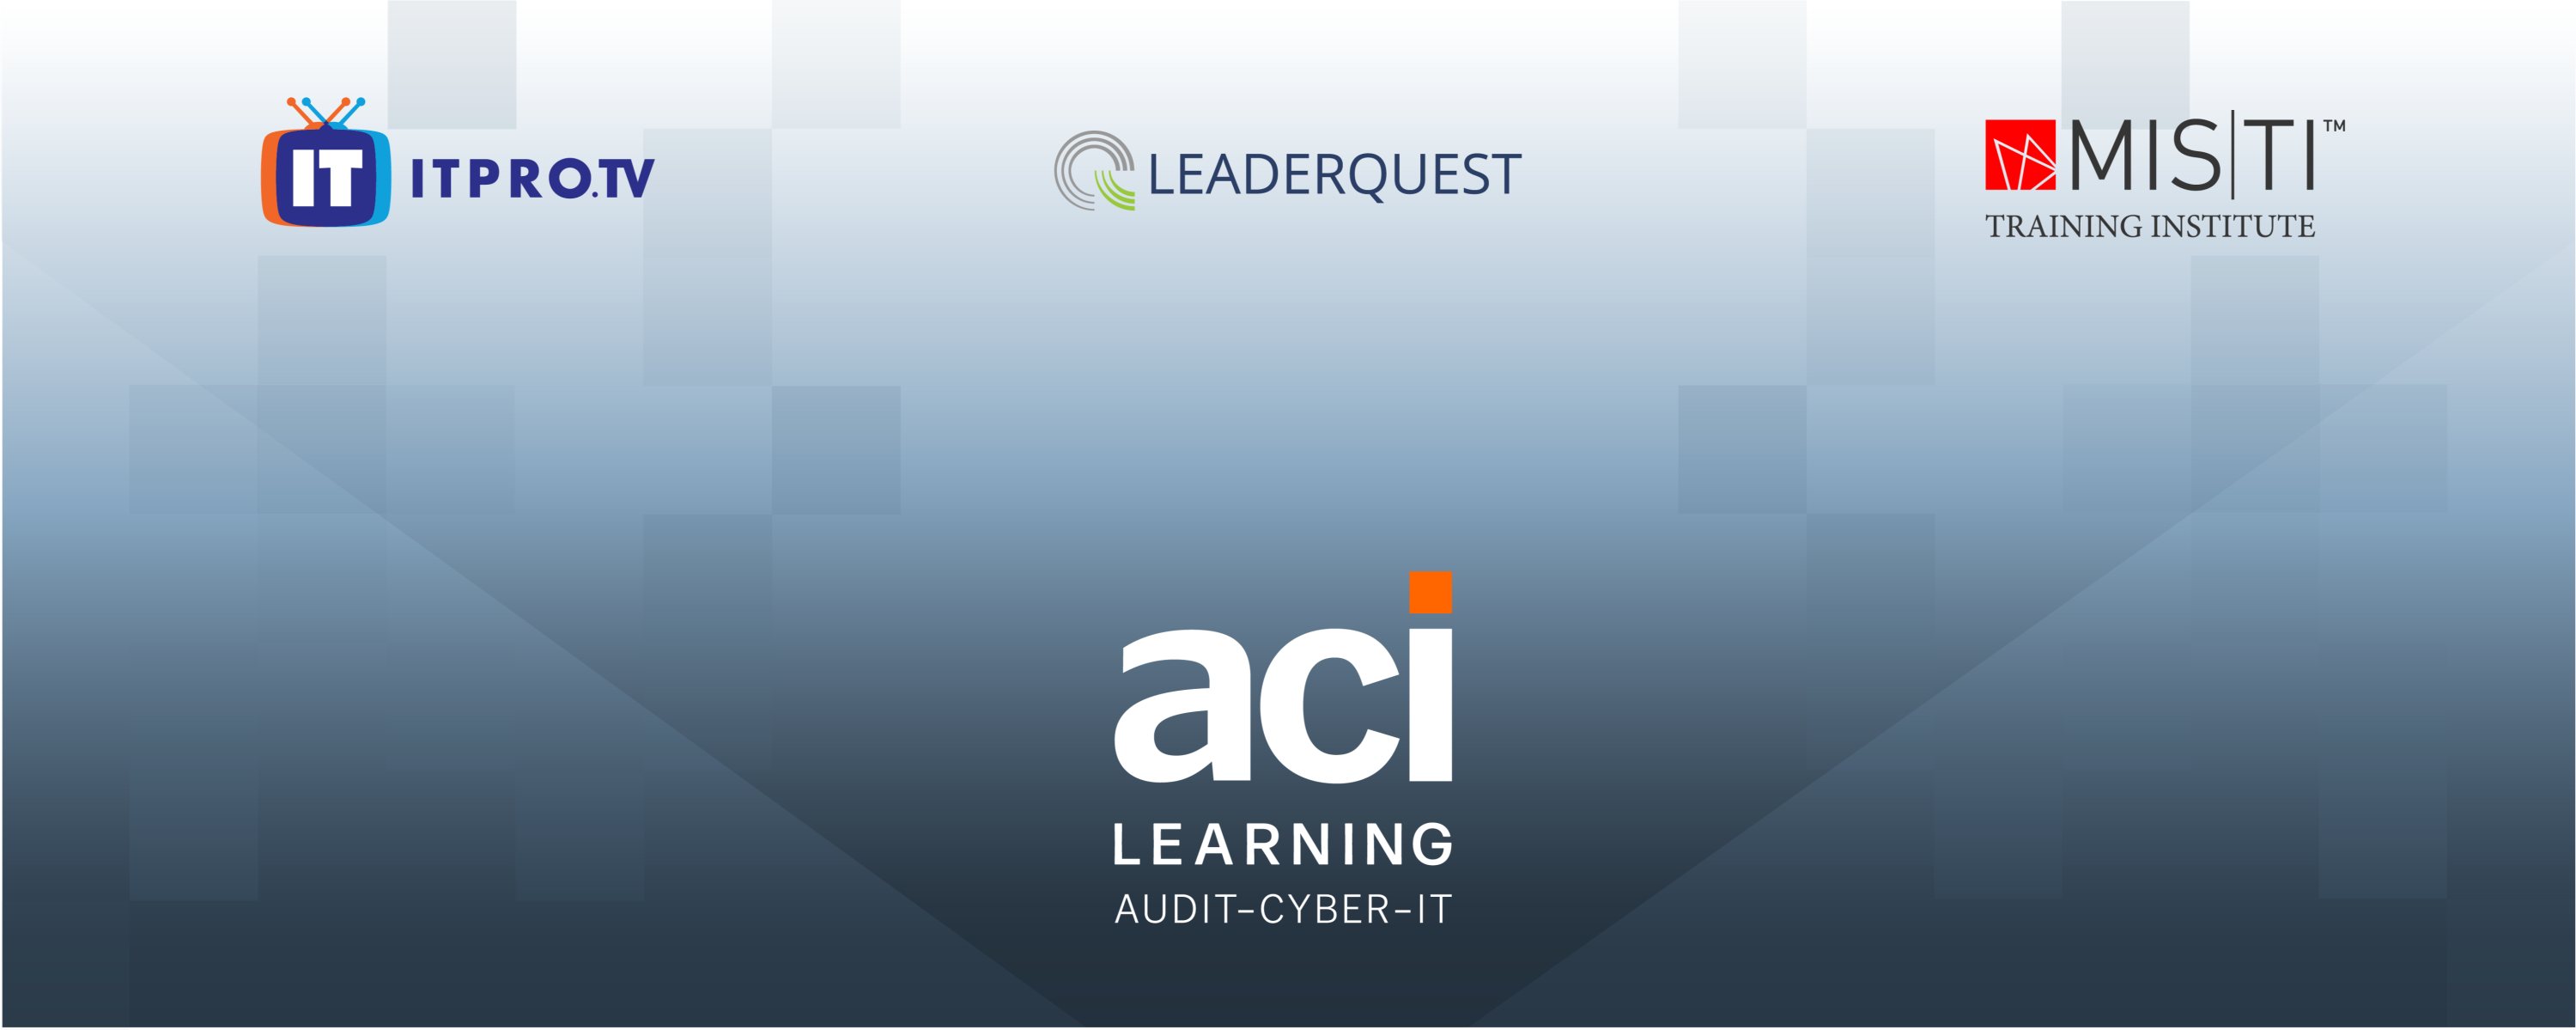 A graphic showing all three of the companies' logos, ITProTV, LeaderQuest, and MISTI, that make up the ACI Learning brand—spotlighted by the parent logo | Blog